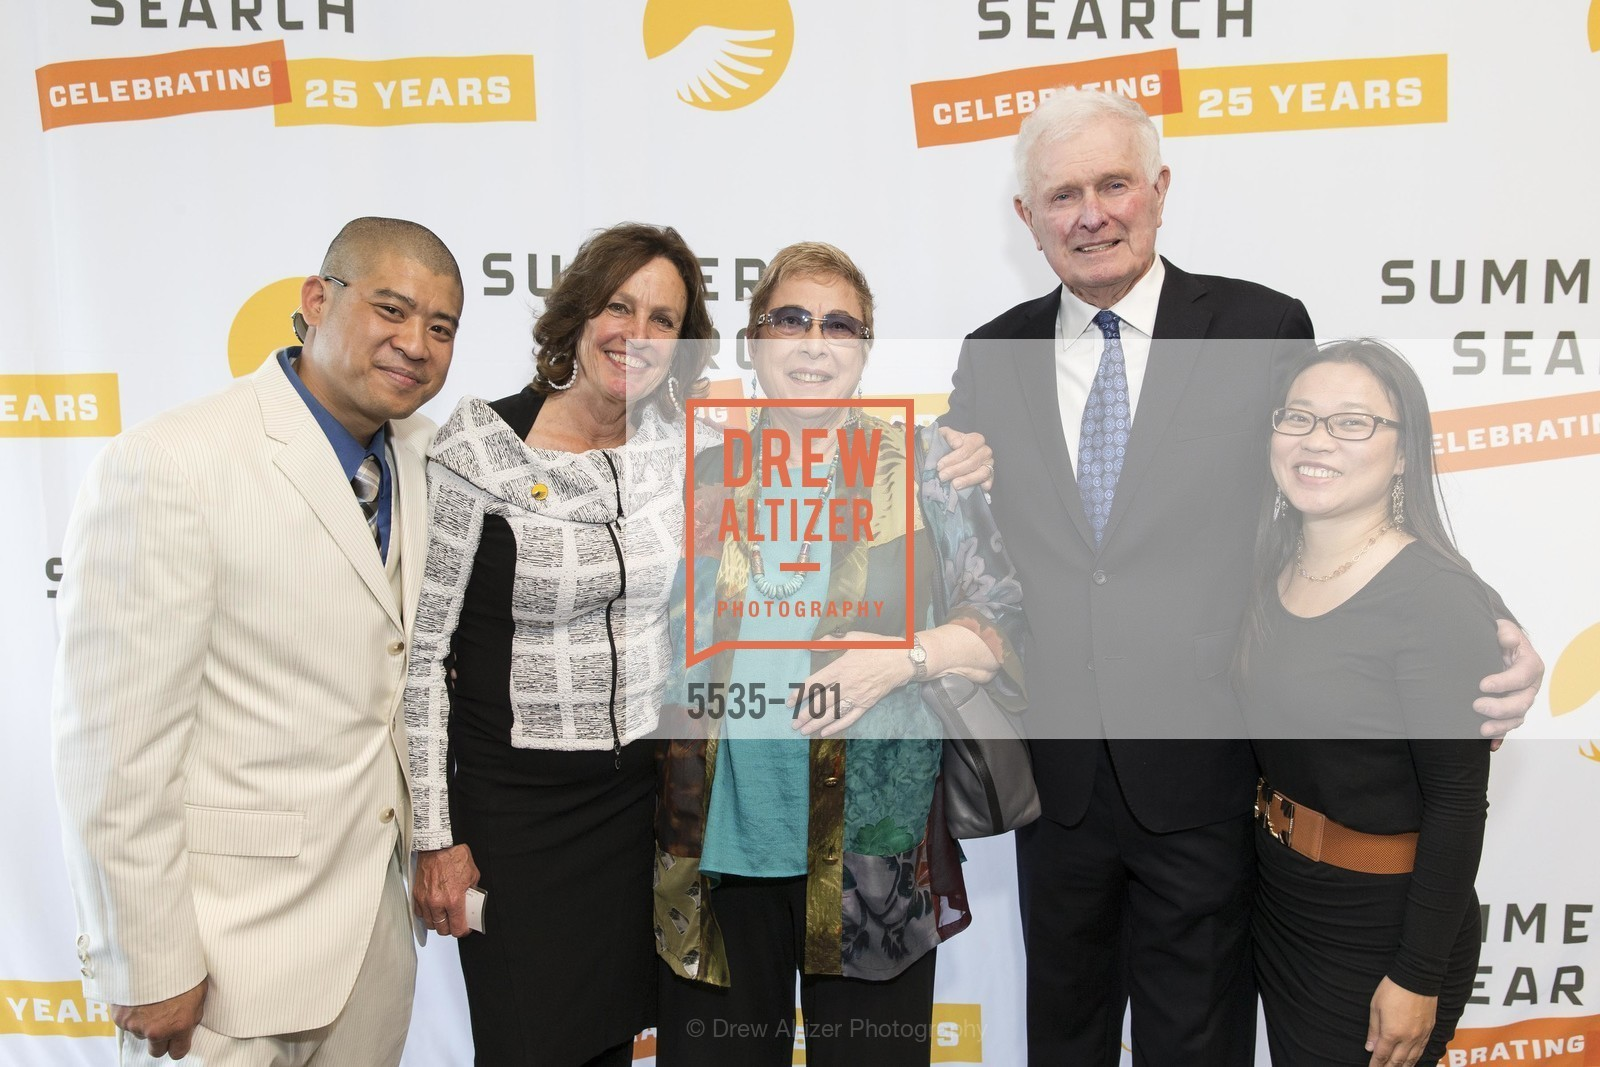 David Nguyen, Linda Mornell, Lettie Lupis, John Moriarty, Janice Lee, SUMMER SEARCH San Francisco 25th Anniversary, US, May 6th, 2015,Drew Altizer, Drew Altizer Photography, full-service agency, private events, San Francisco photographer, photographer california